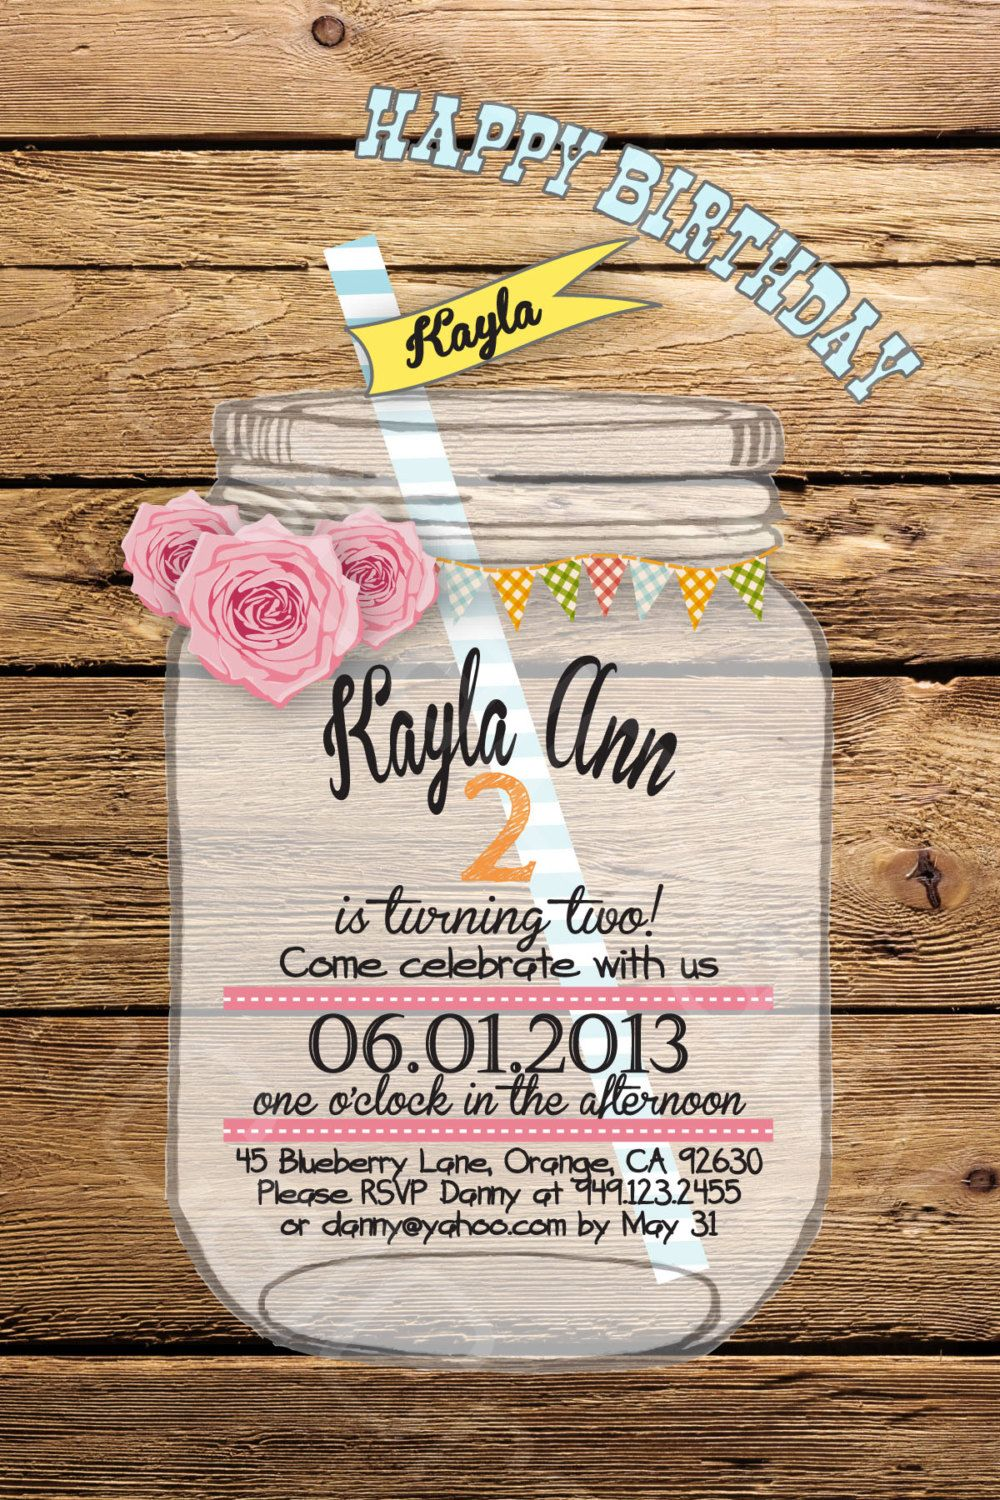 Rustic Country Theme Birthday Party Invitation by socalcrafty – Country Party Invitations